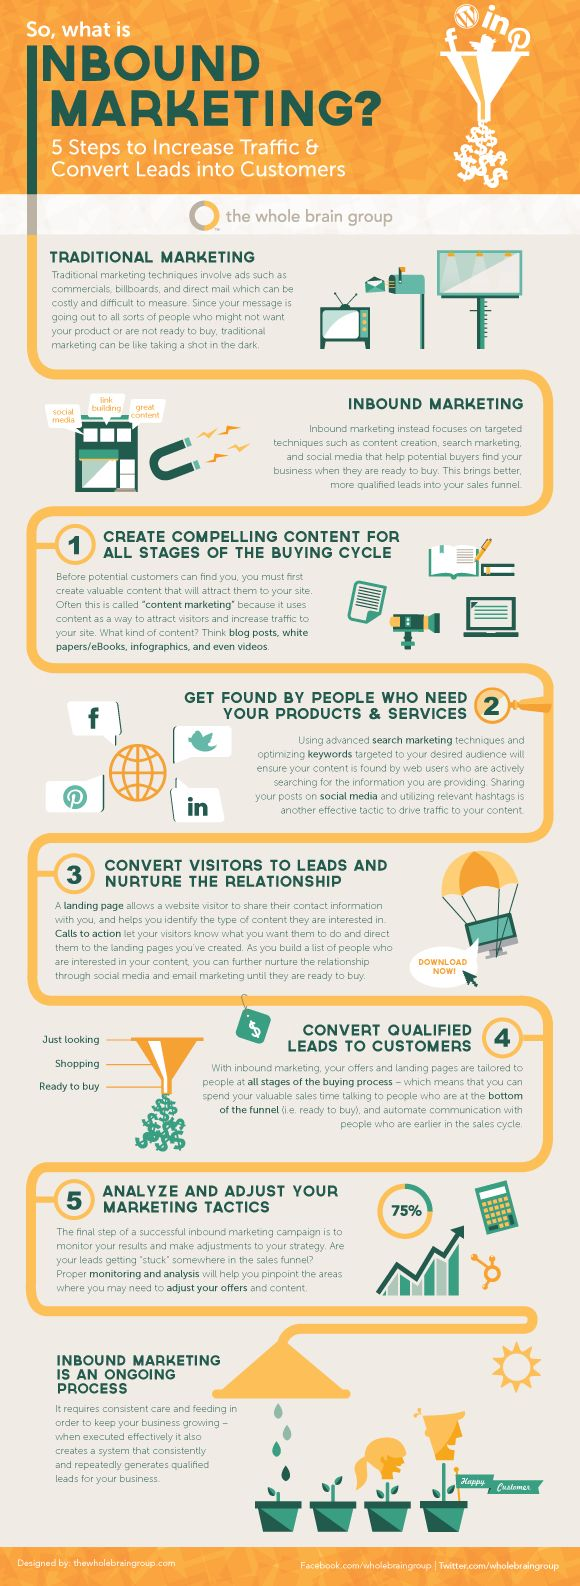 What is Inbound Marketing? 5 Steps to Increase Traffic and Convert Leads into Customers [Infographic]